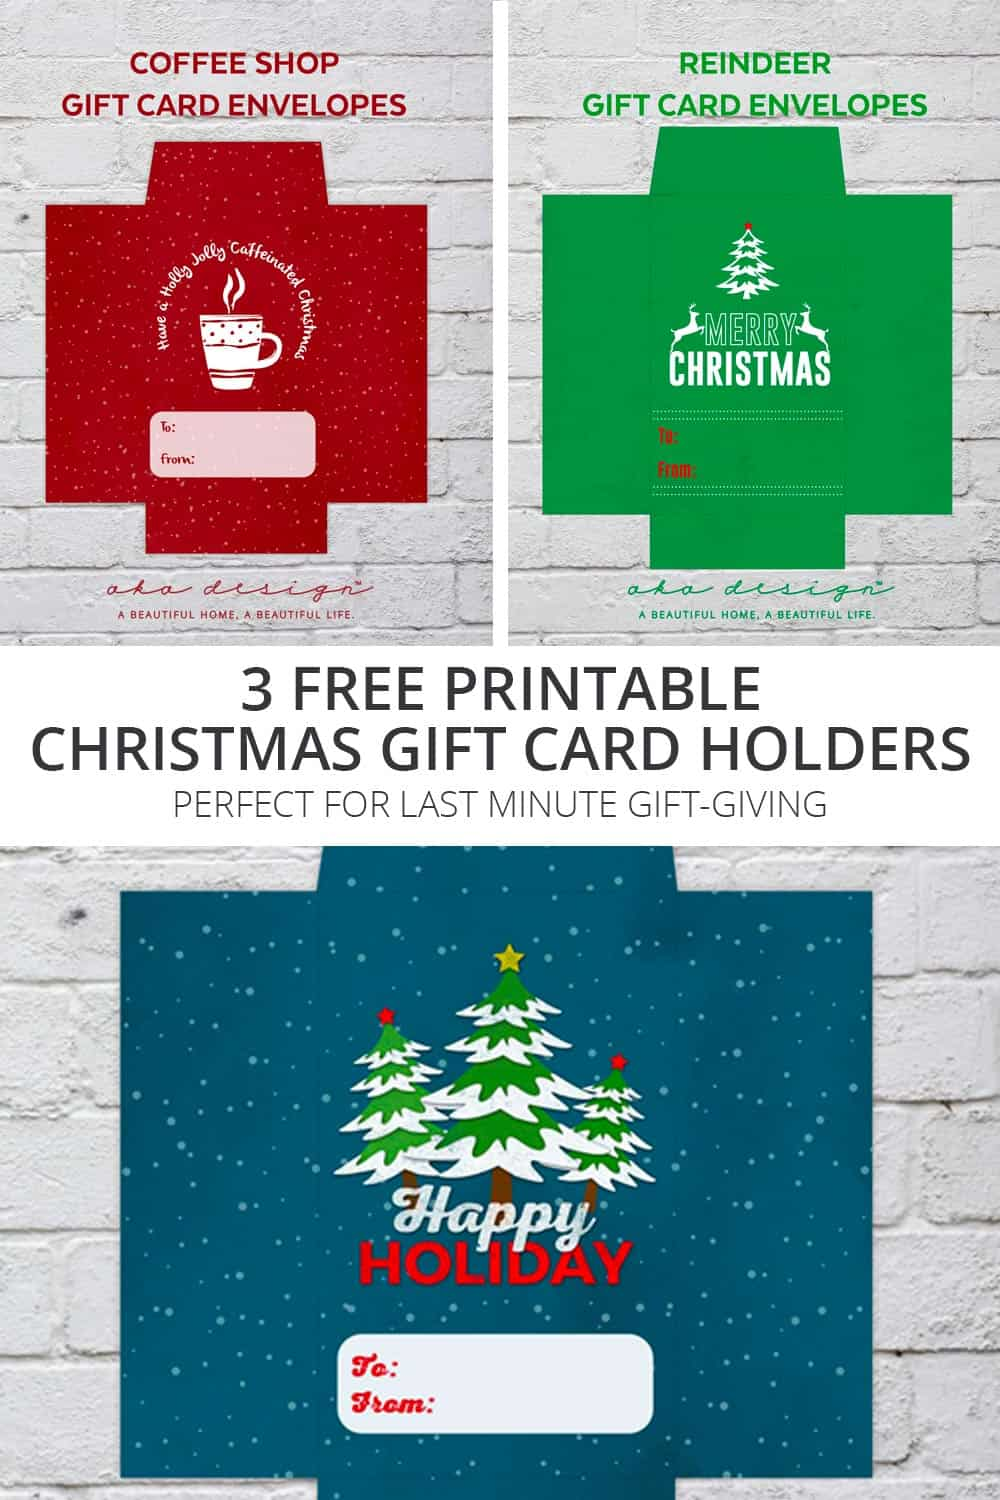 3 Free Printable Christmas Gift Card Holders - For Last Minute Gift ...